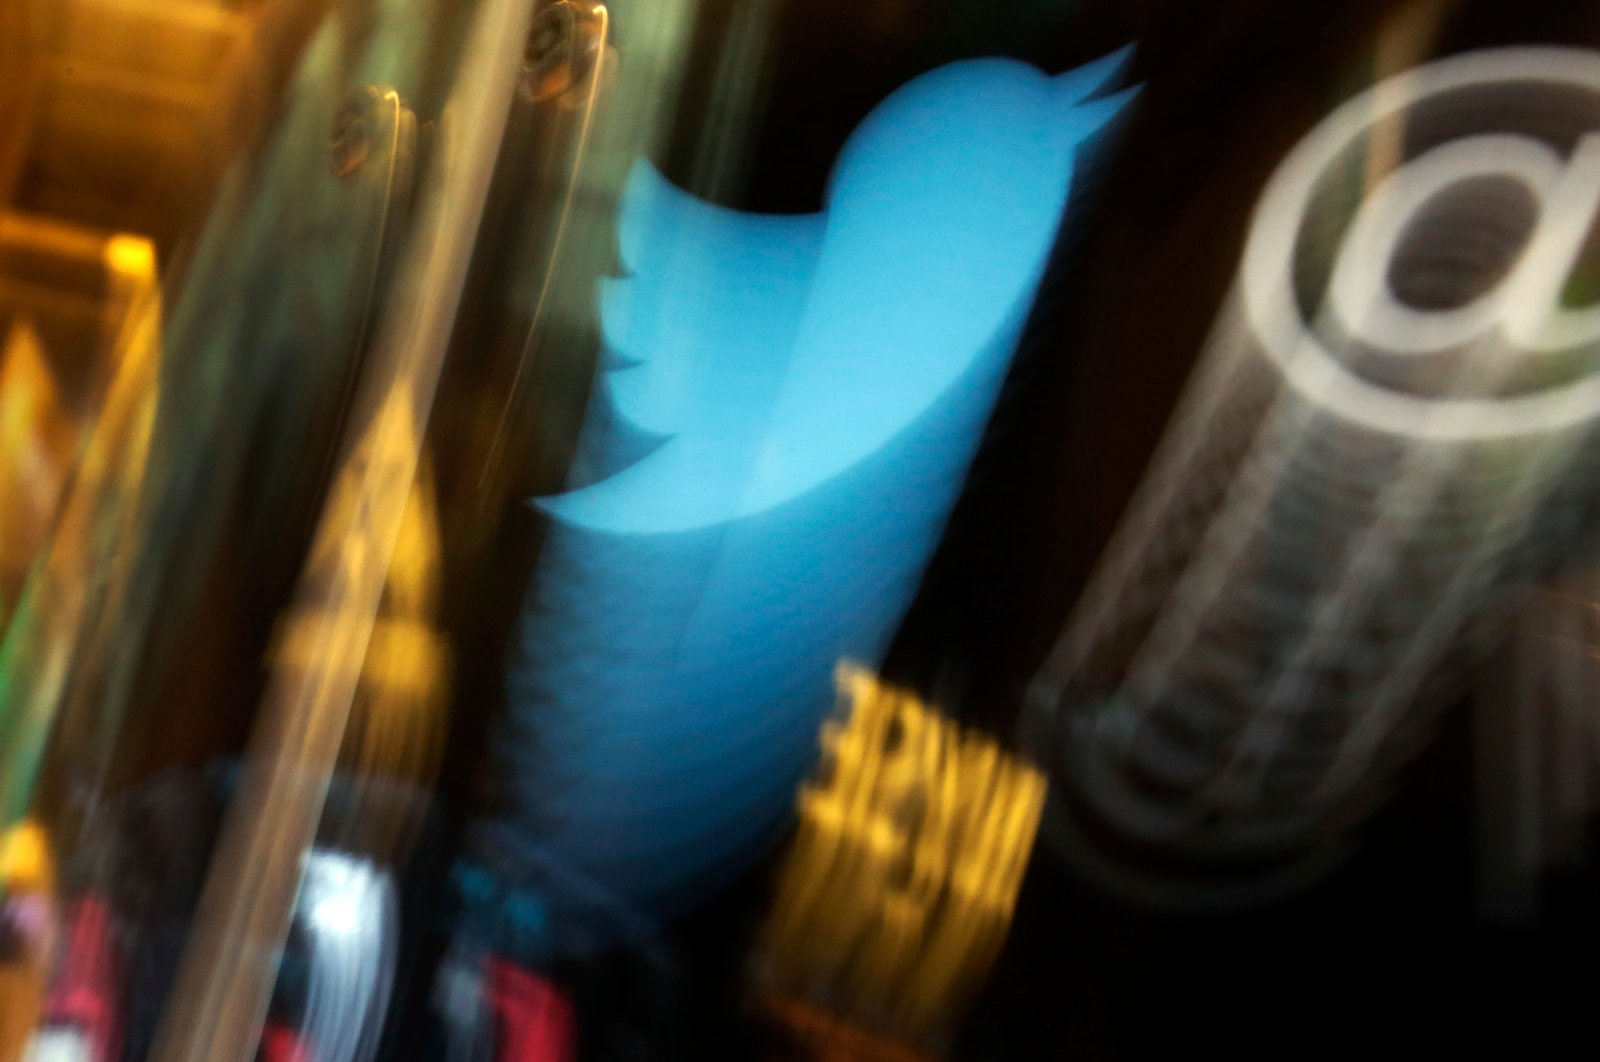 The Twitter logo appears on an updated phone post on the floor of the New York Stock Exchange, New York City, New York, U.S., Nov. 6, 2013. (AP Photo)